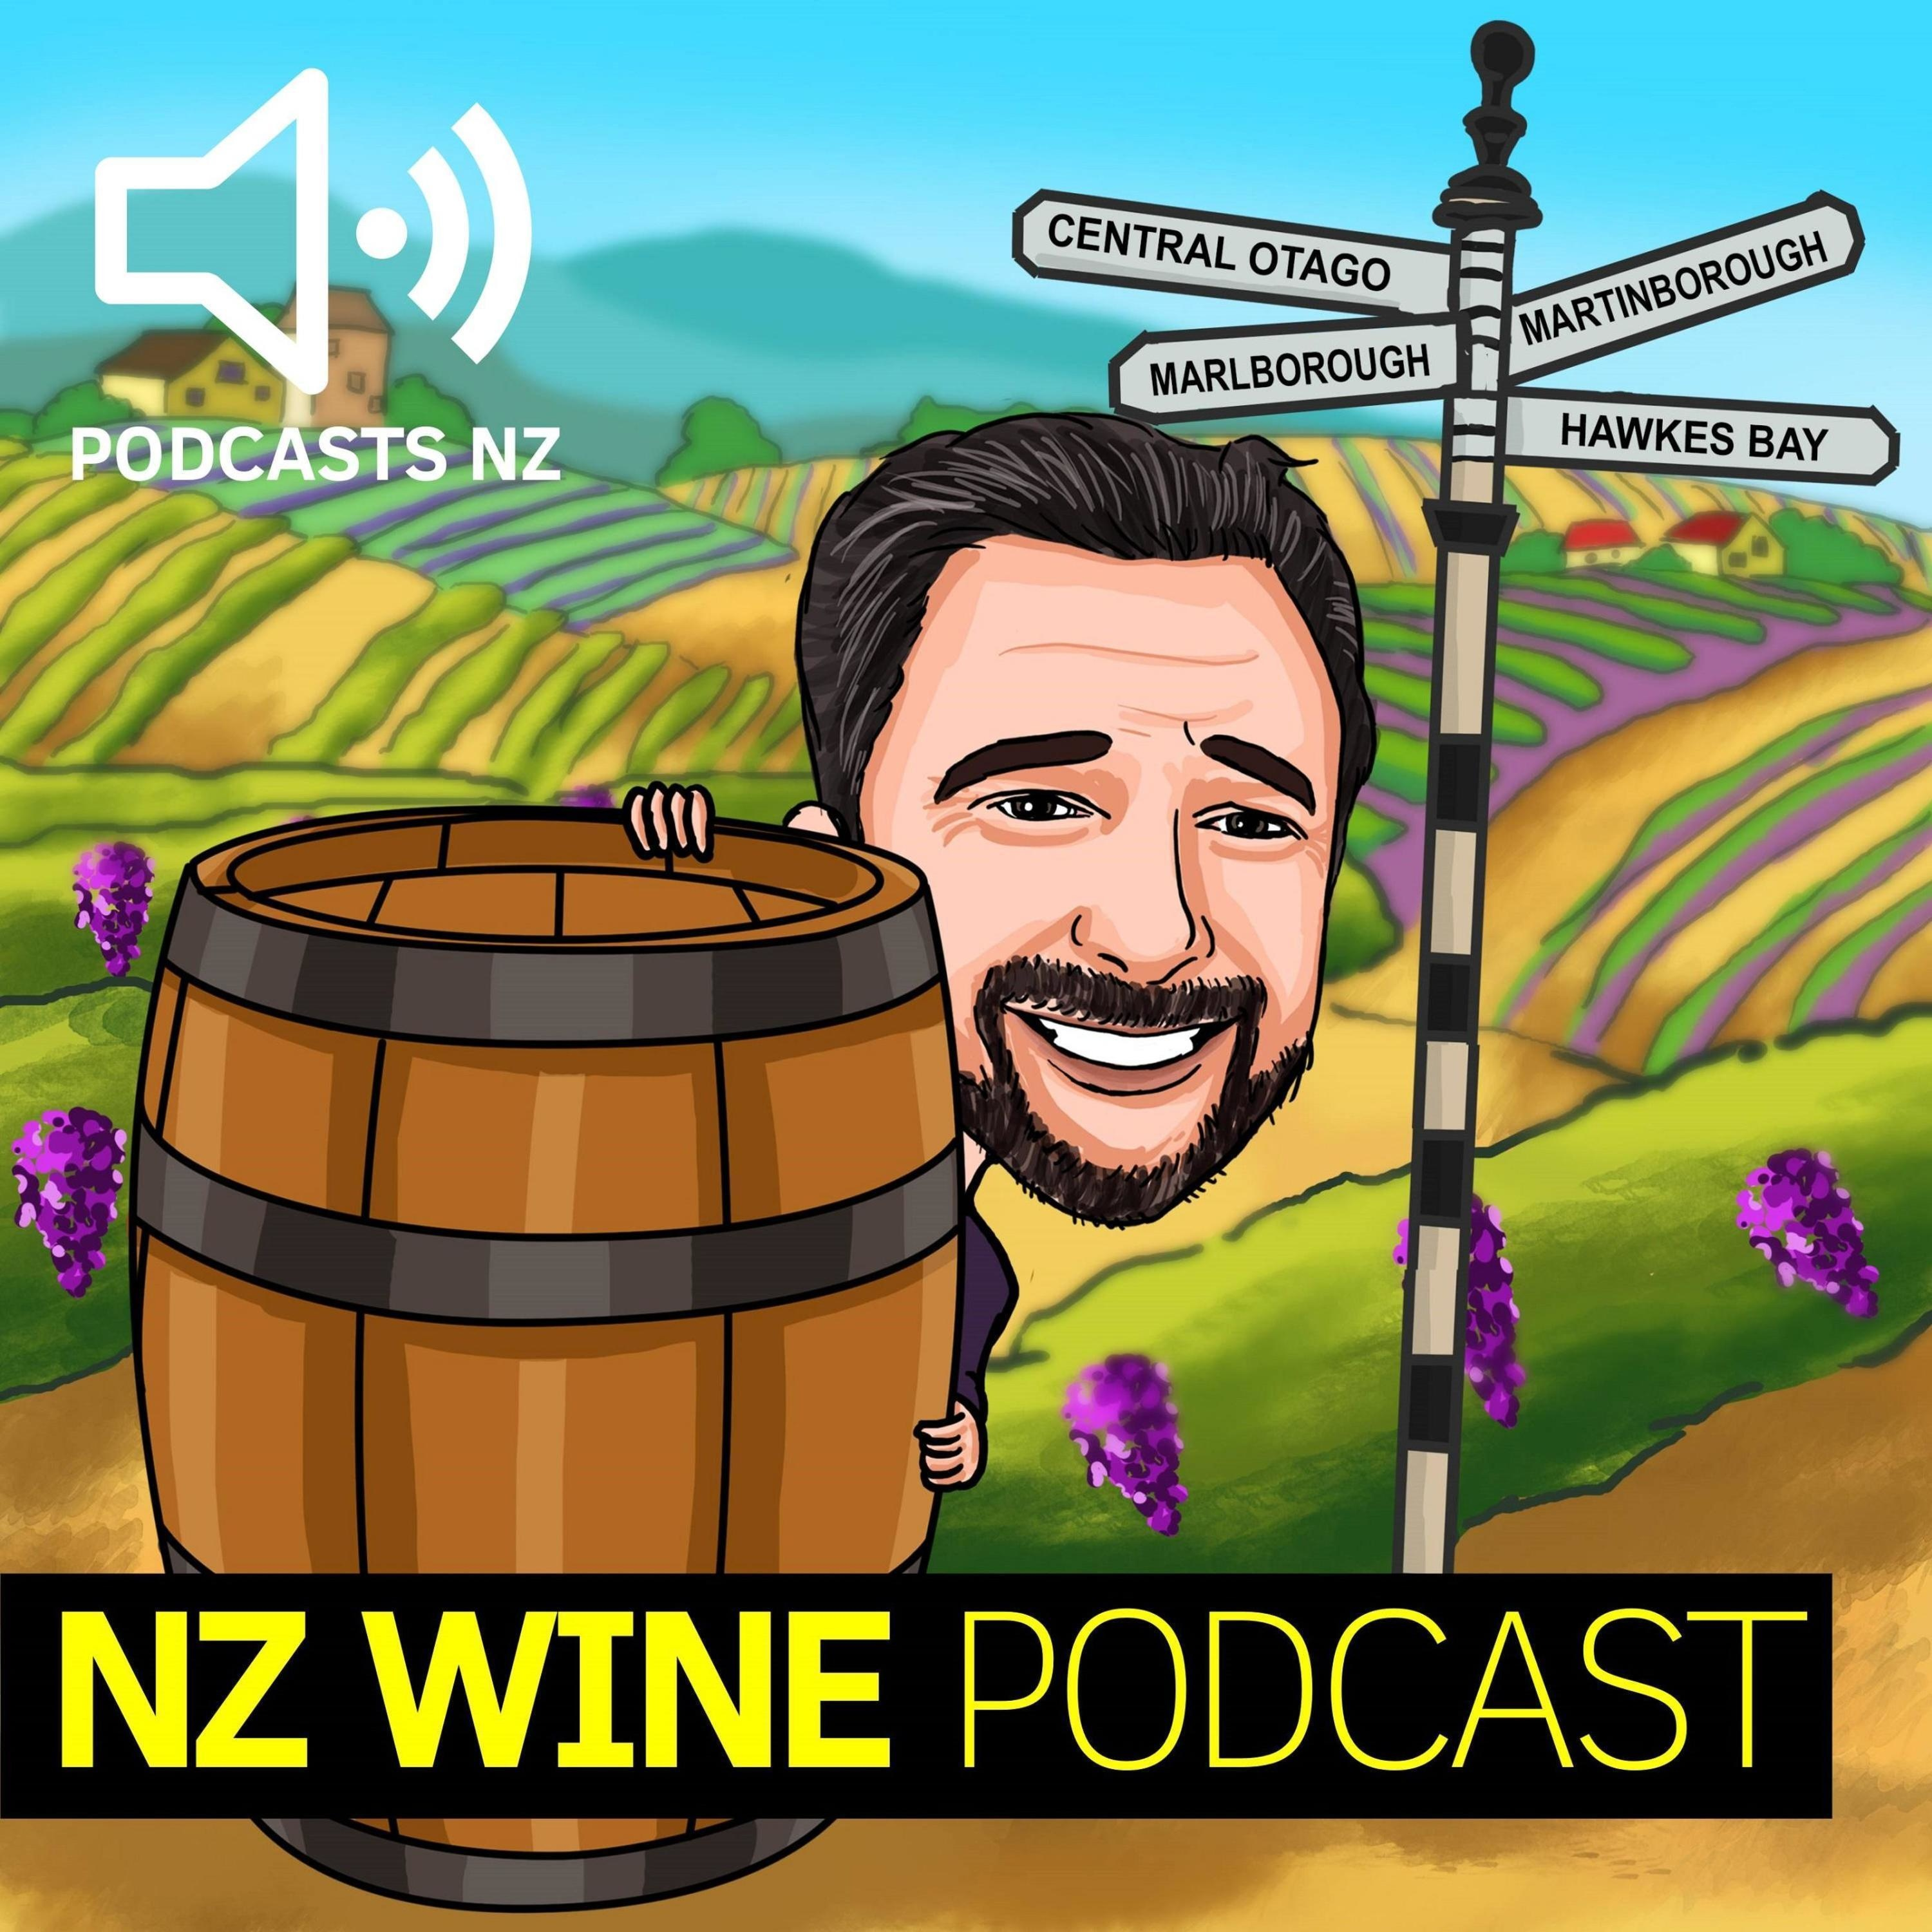 NZ Wine Podcast 49: David Nash - 'A Seat at the Table'